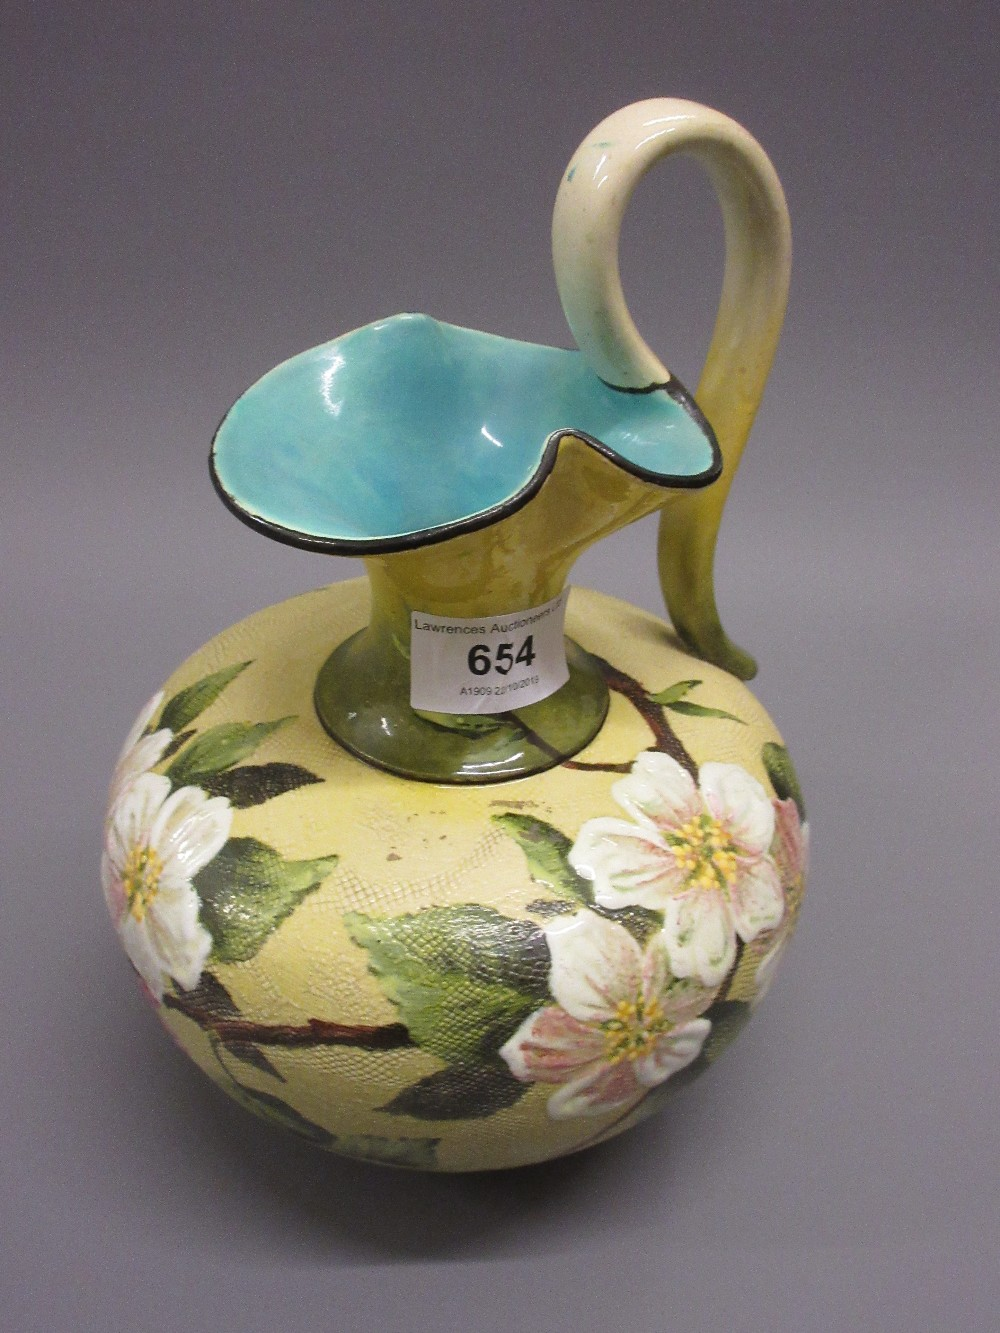 Lot 654 - Doulton Slaters Patent jug vase painted with wild flowers and coloured enamels on a yellow mottled